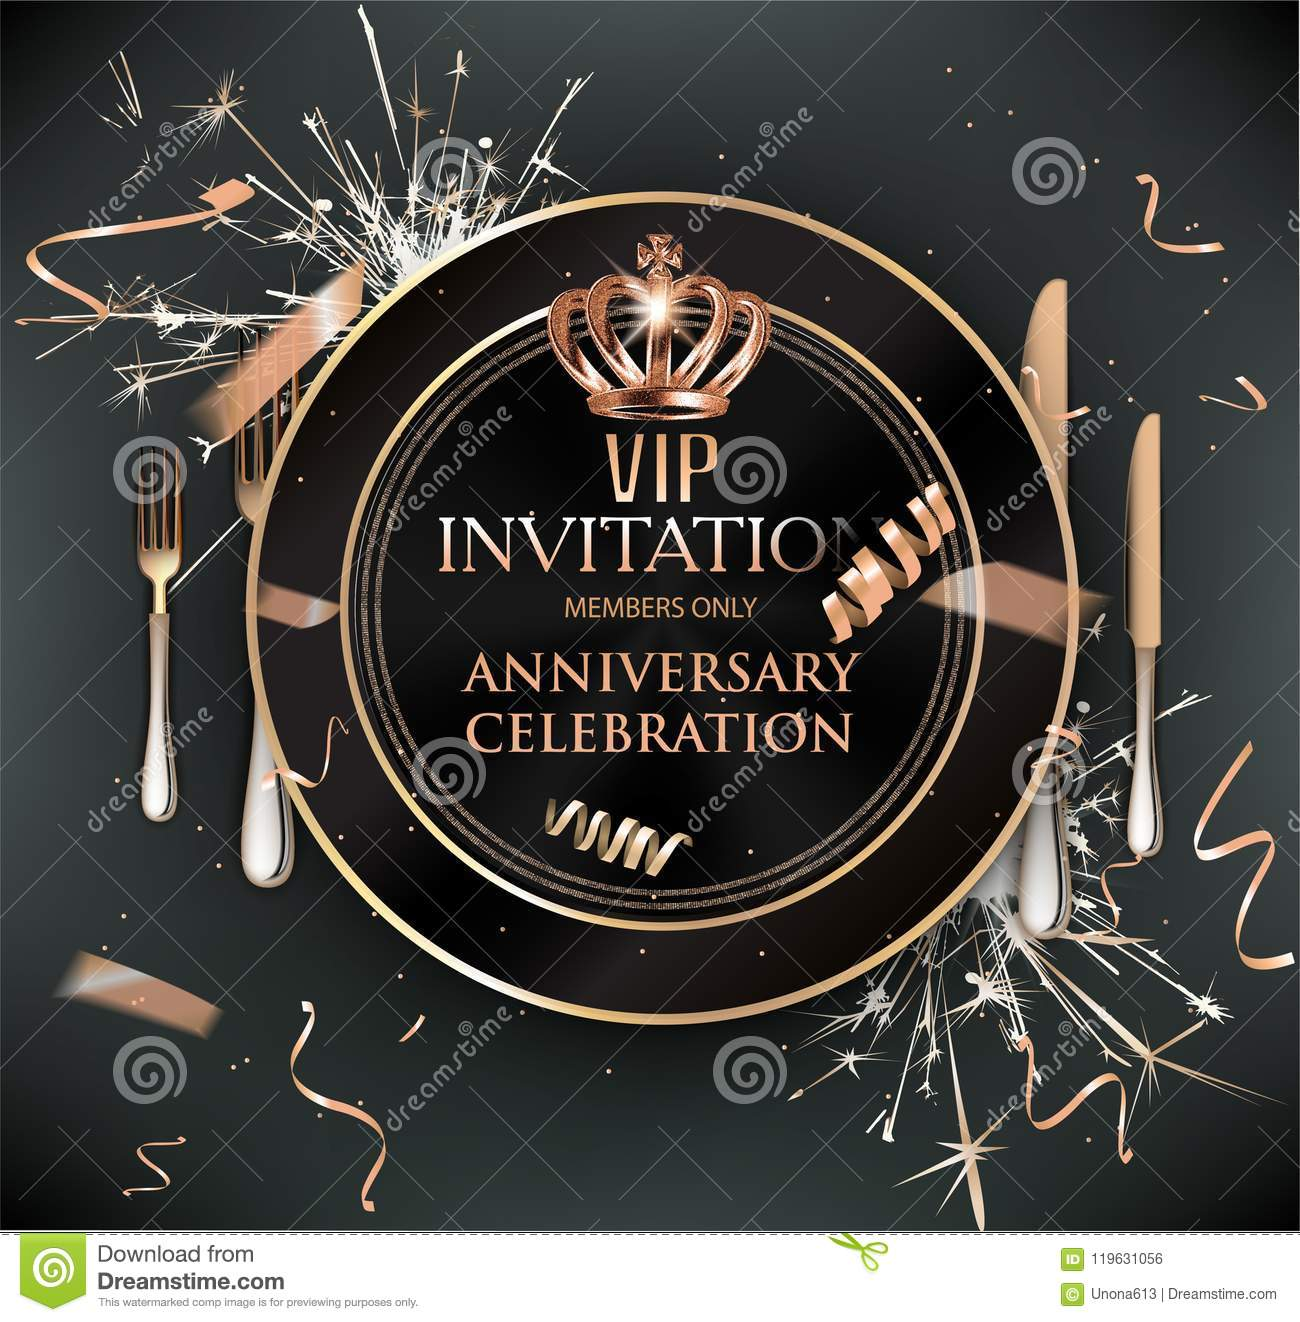 Vip Dinner Invitation Card With Cold Confetti Plate And